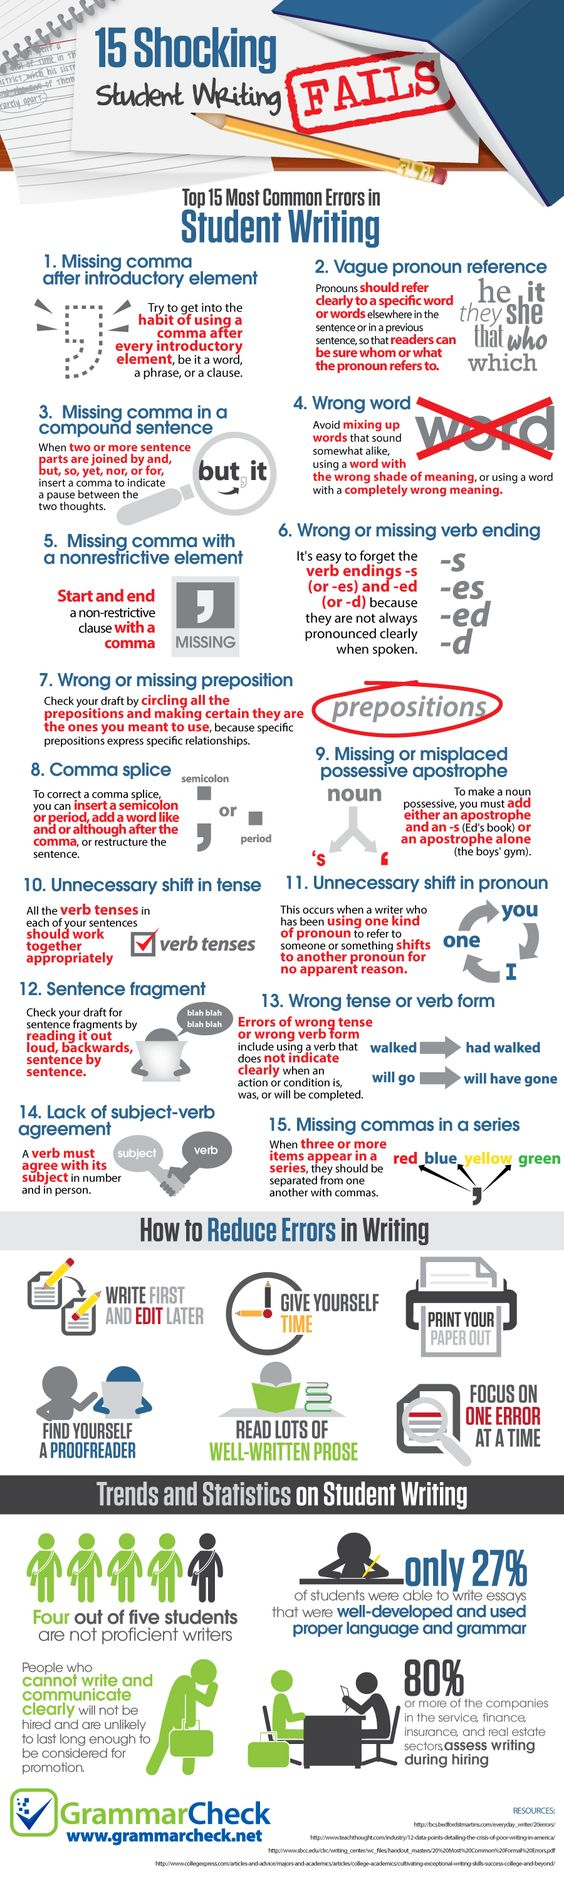 shocking student writing fails infographic about writing 15 shocking student writing fails infographic